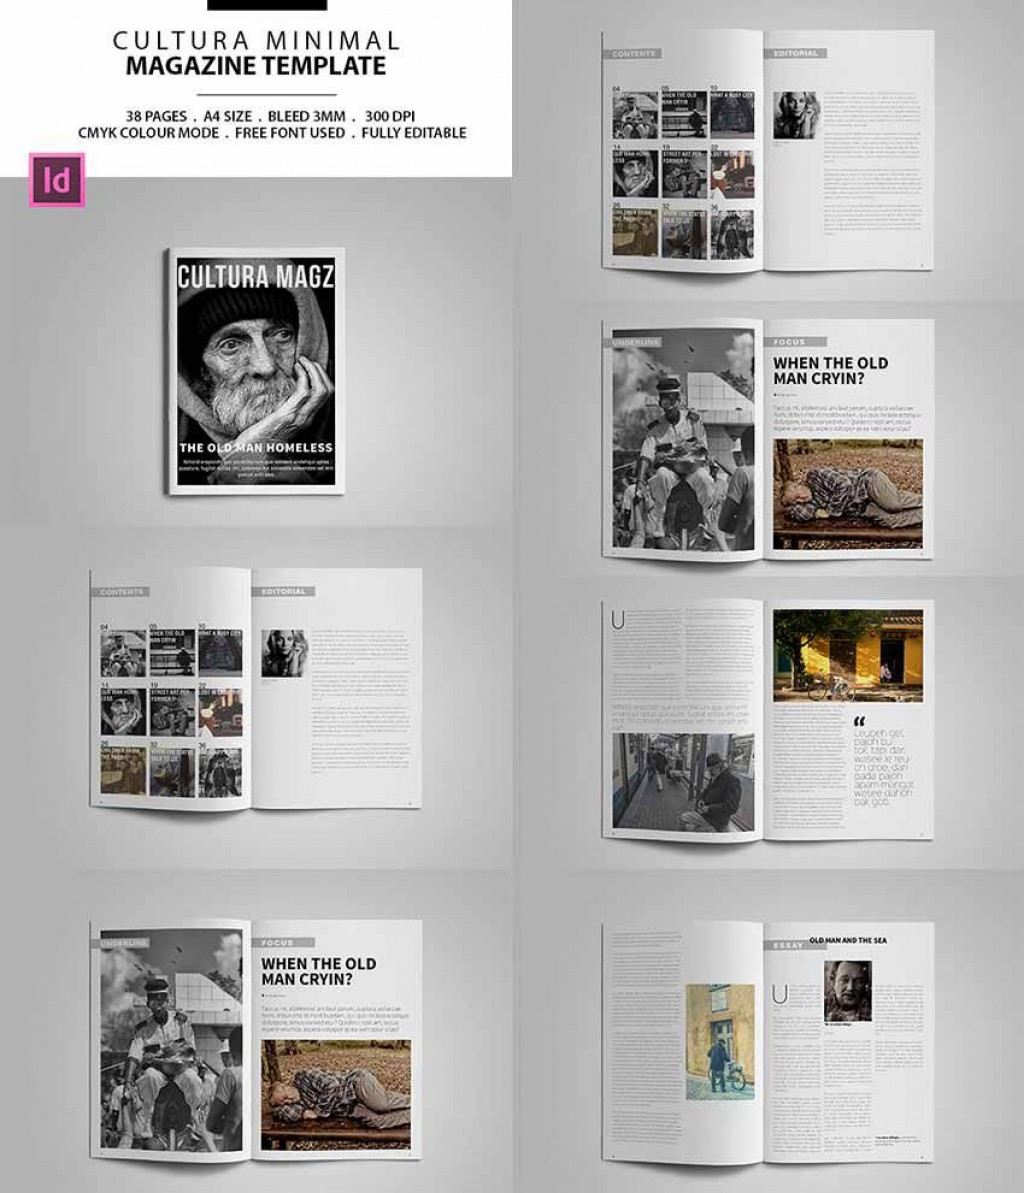 006 Astounding Free Magazine Layout Template Example  Templates For Word Microsoft PowerpointLarge